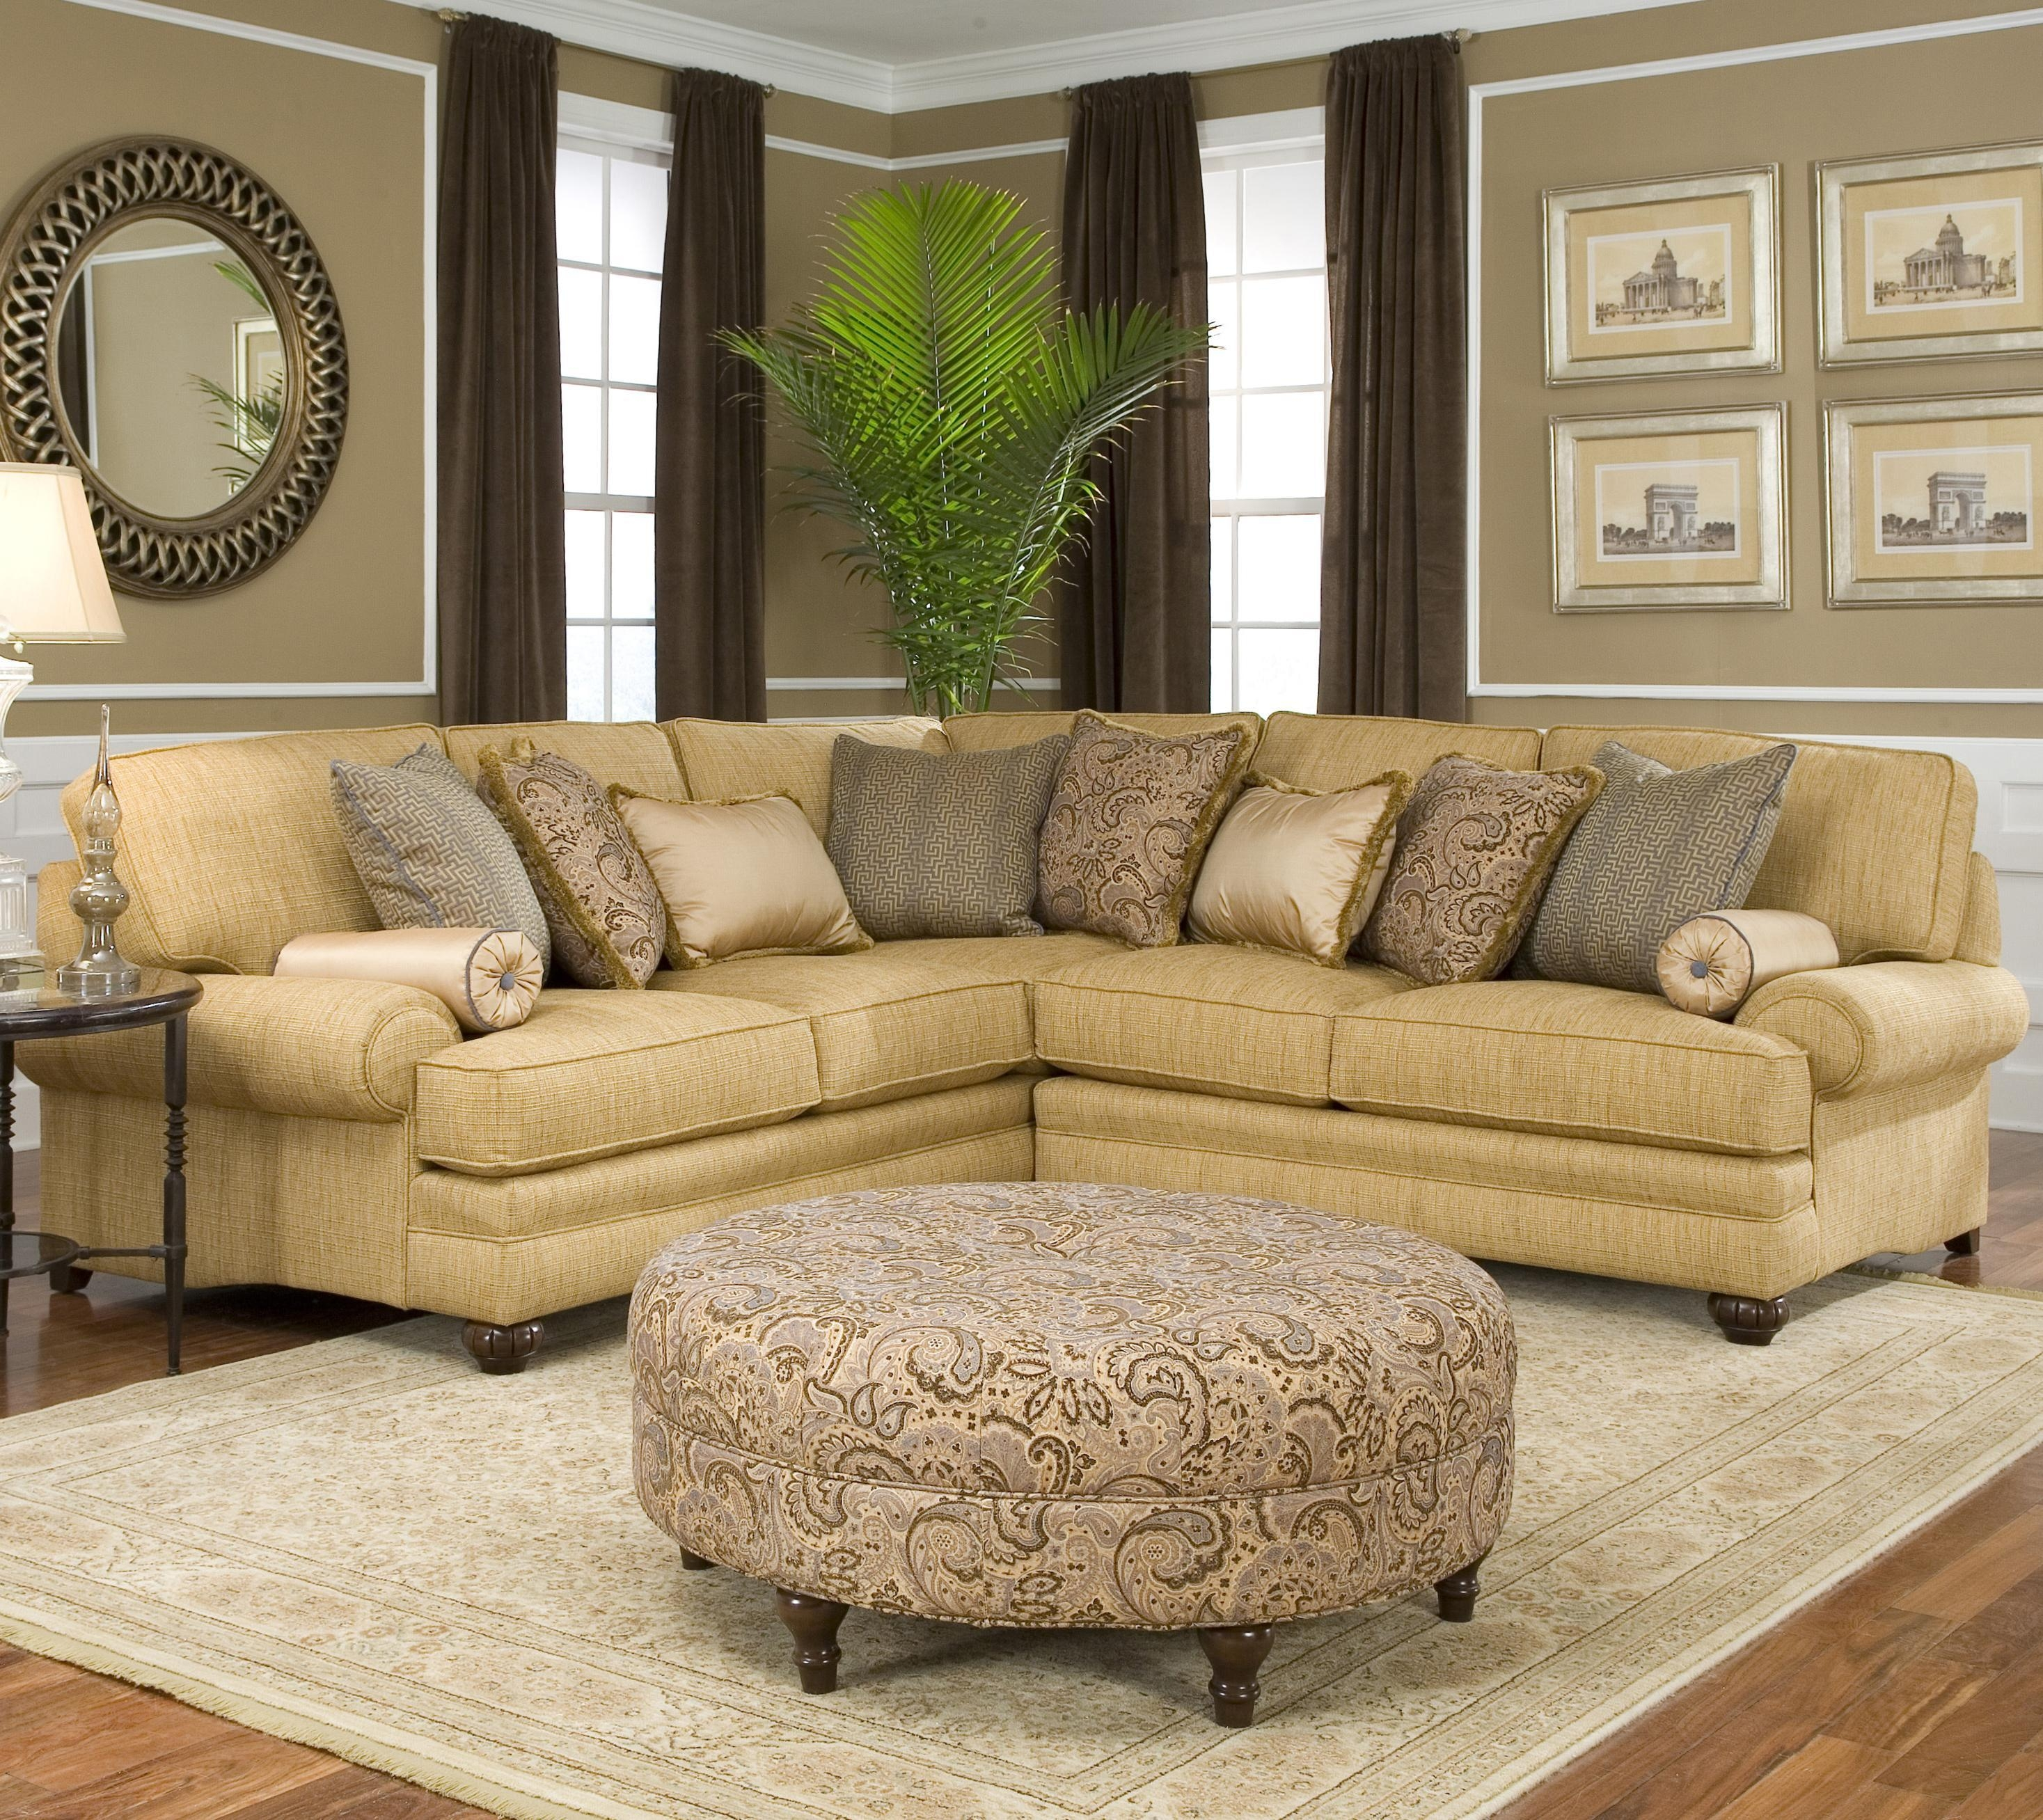 Featured Image of Traditional Sectional Sofas Living Room Furniture